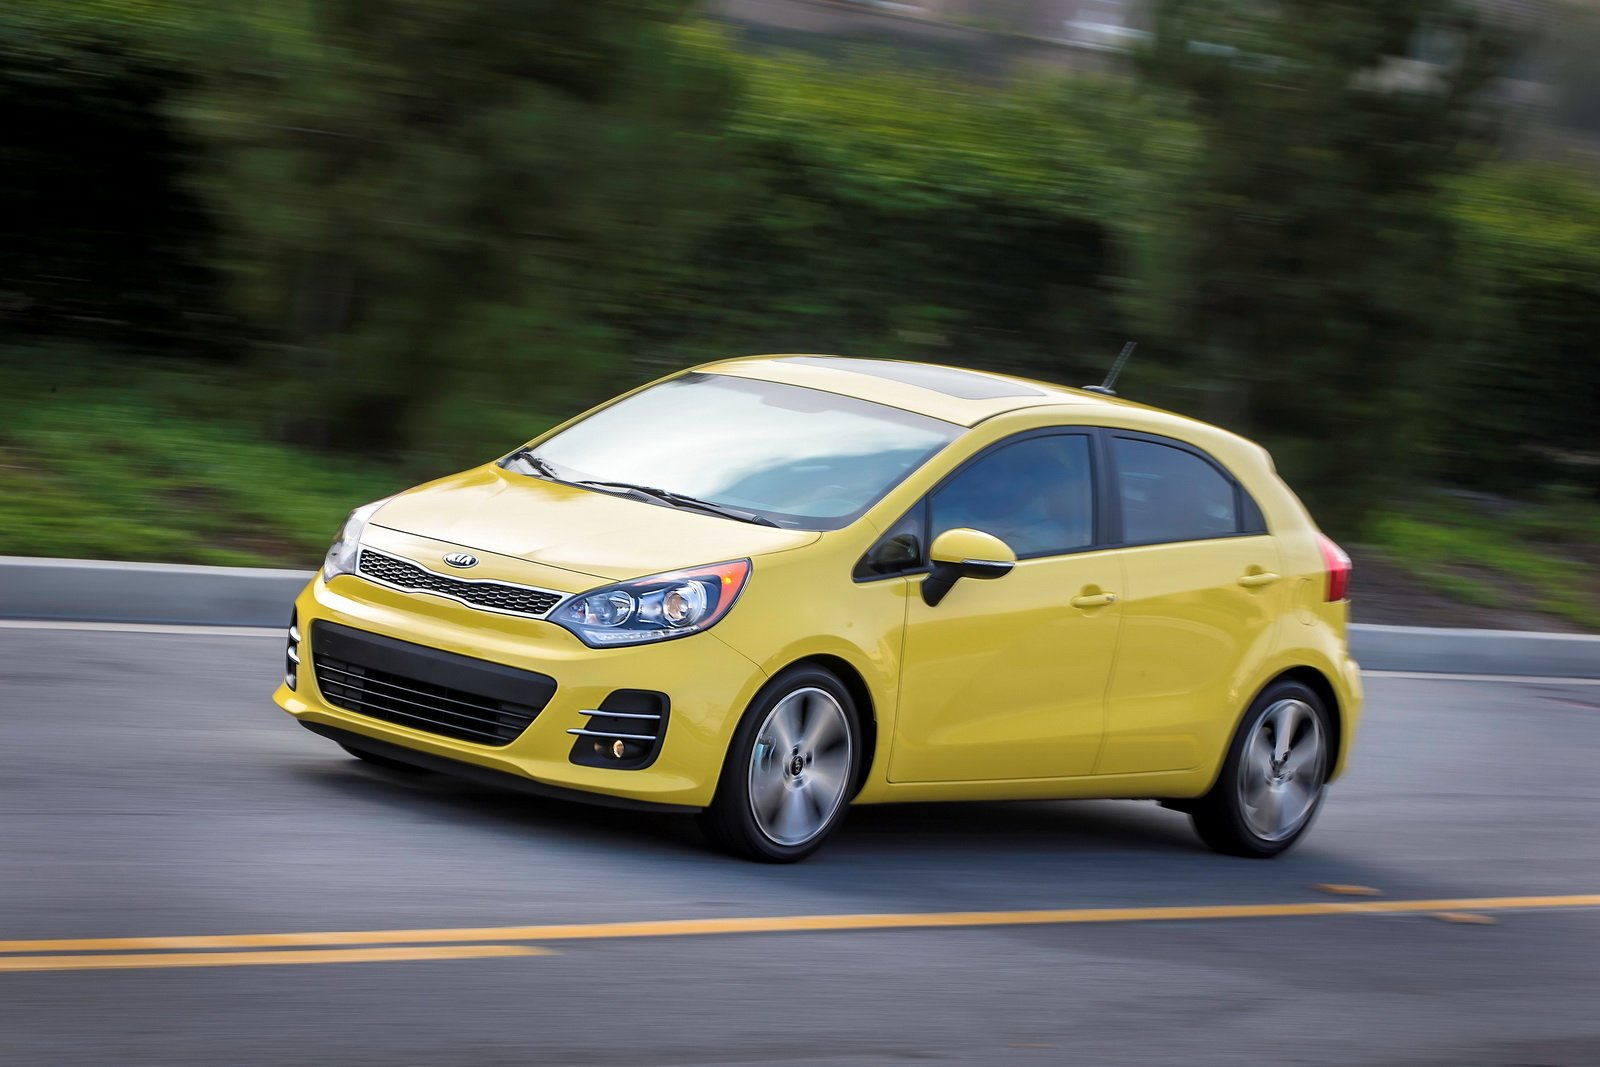 2016 Kia Rio Desktop Background Wallpapers 13327   Grivucom 1600x1067